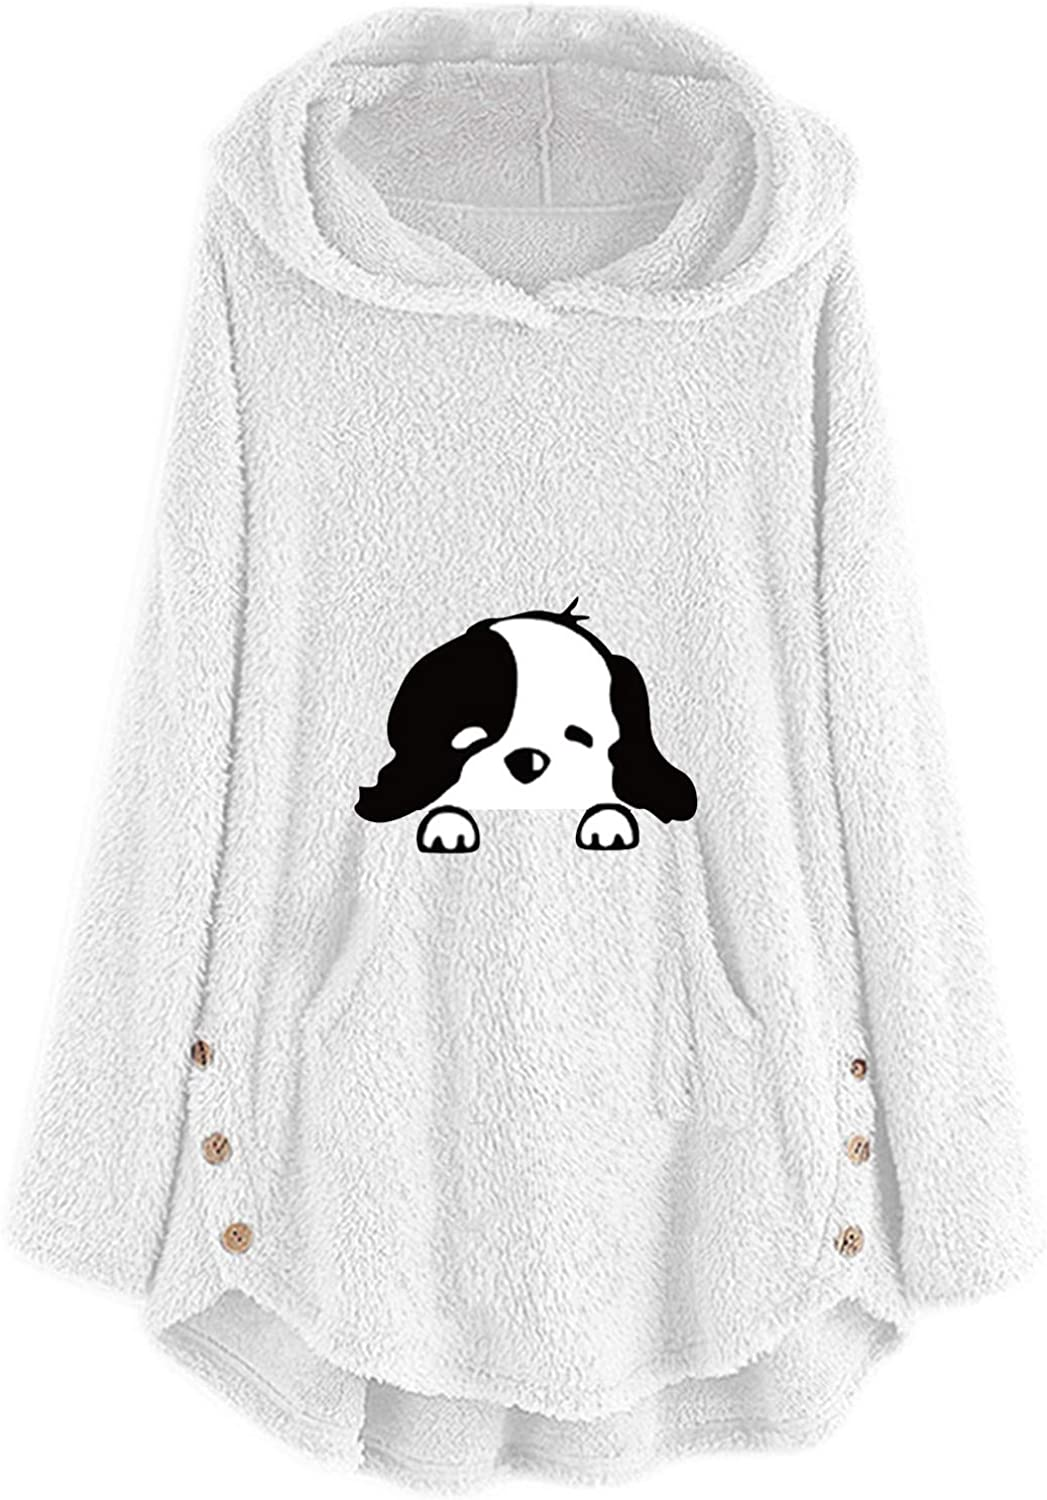 Our shop OFFers the best service Women New products world's highest quality popular Casual Fleece Pullover Dog Panda-Embroidery Blou Plus Size